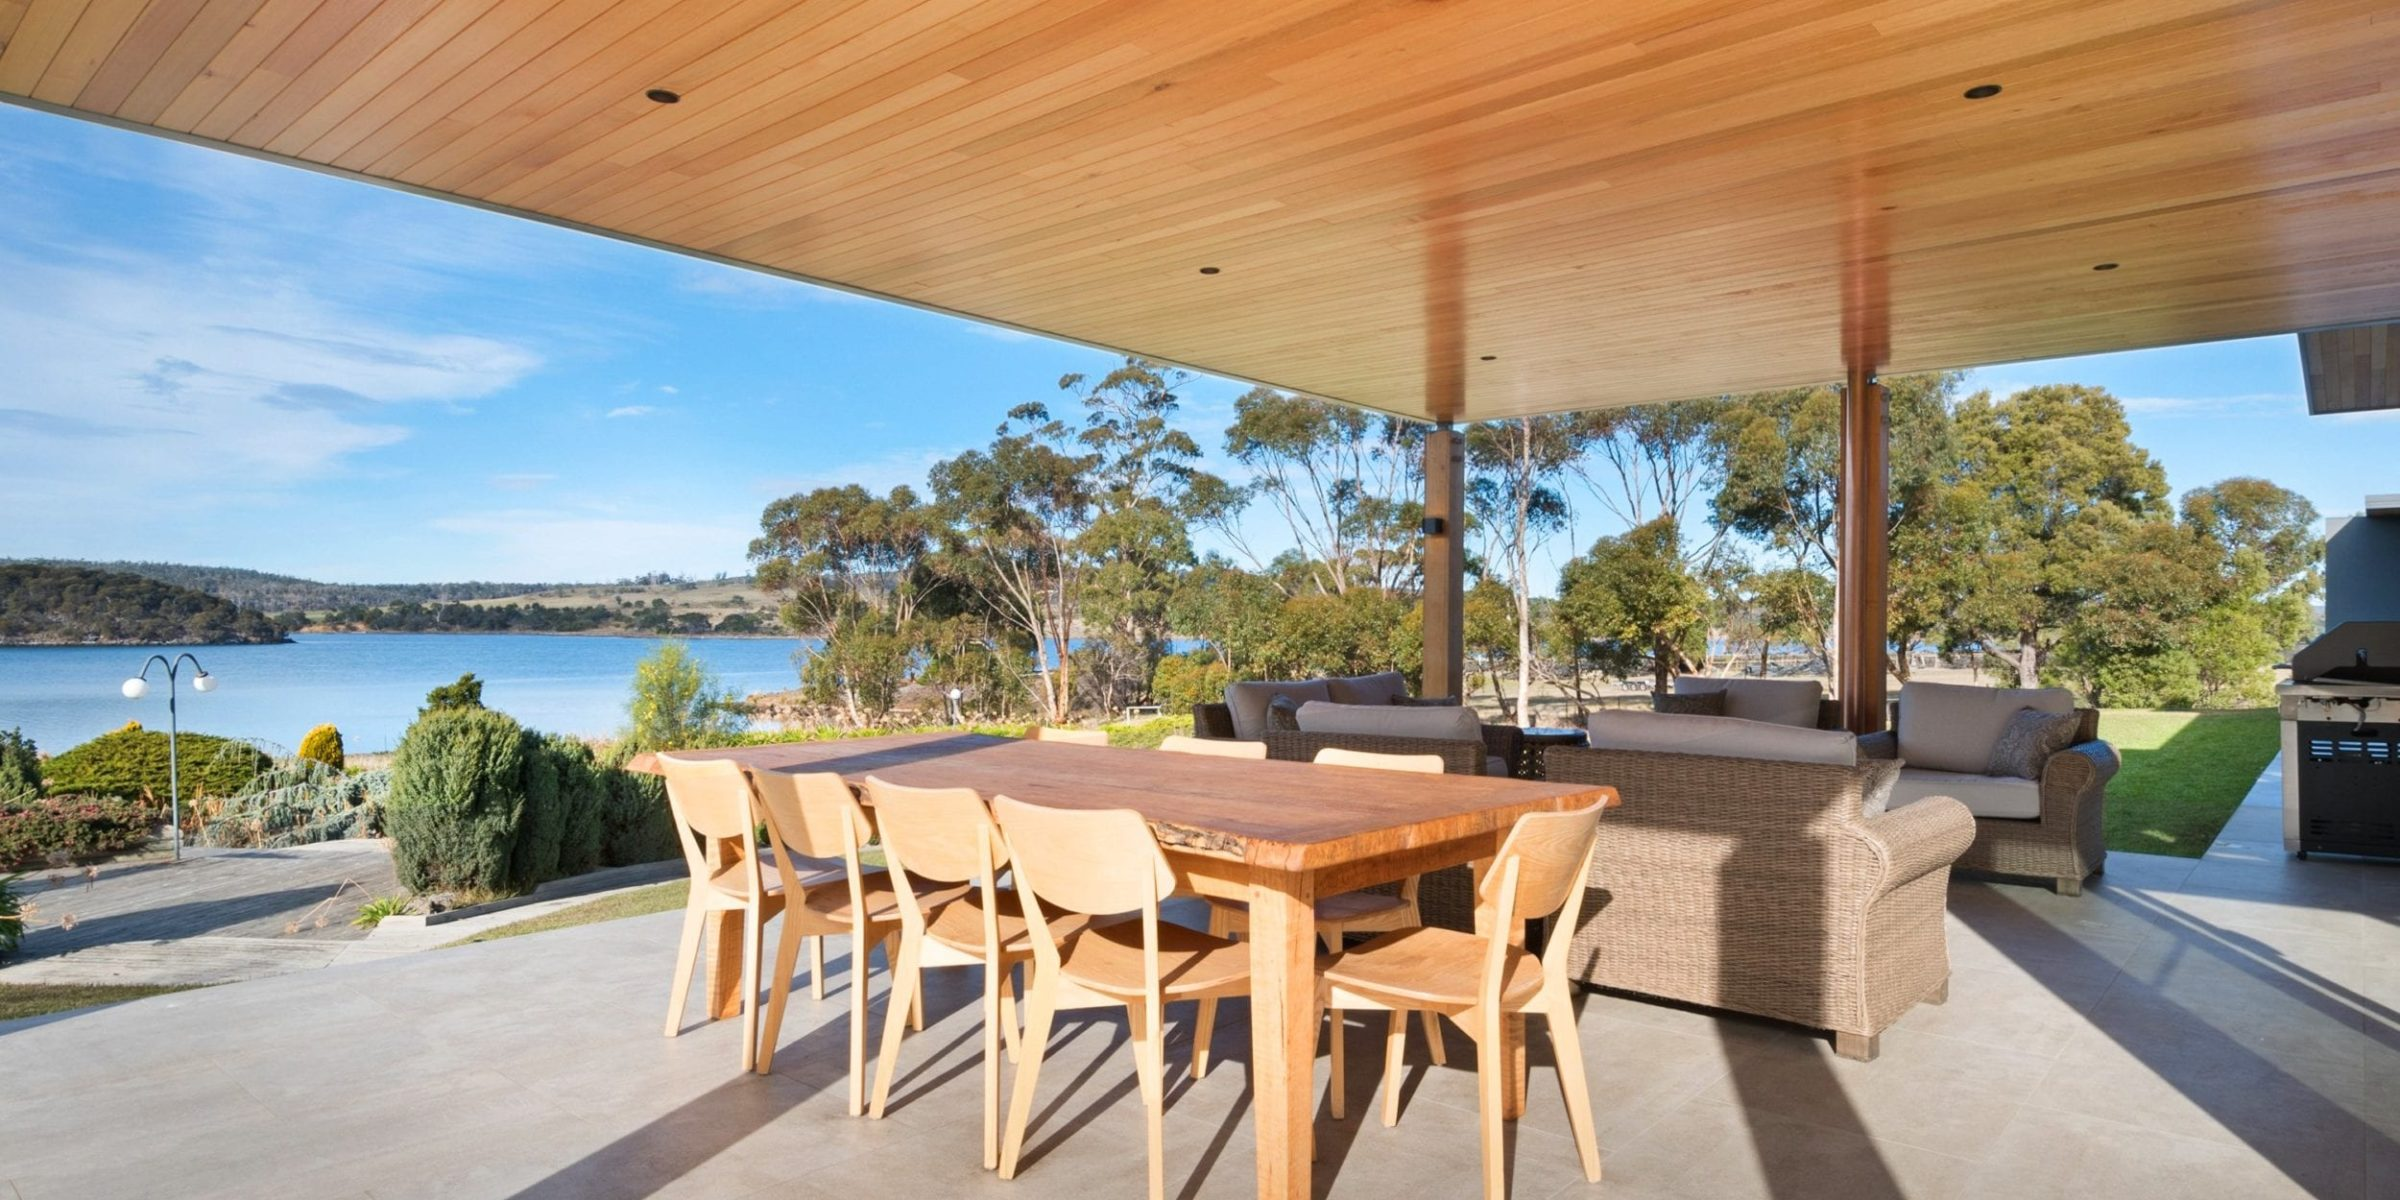 Tasmanian Oak lining over the outdoor setting.